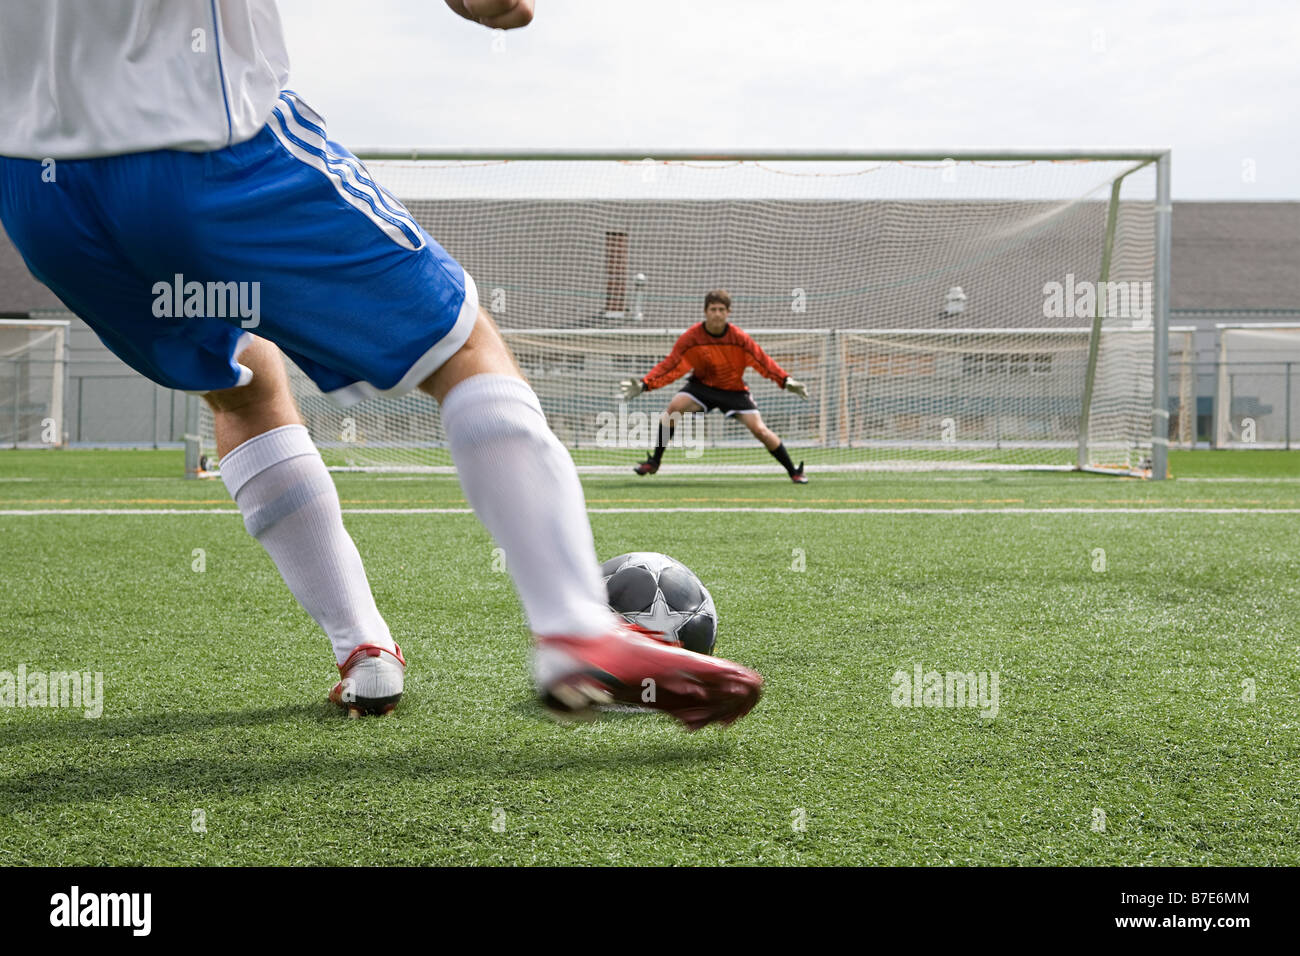 Footballer and goalkeeper - Stock Image